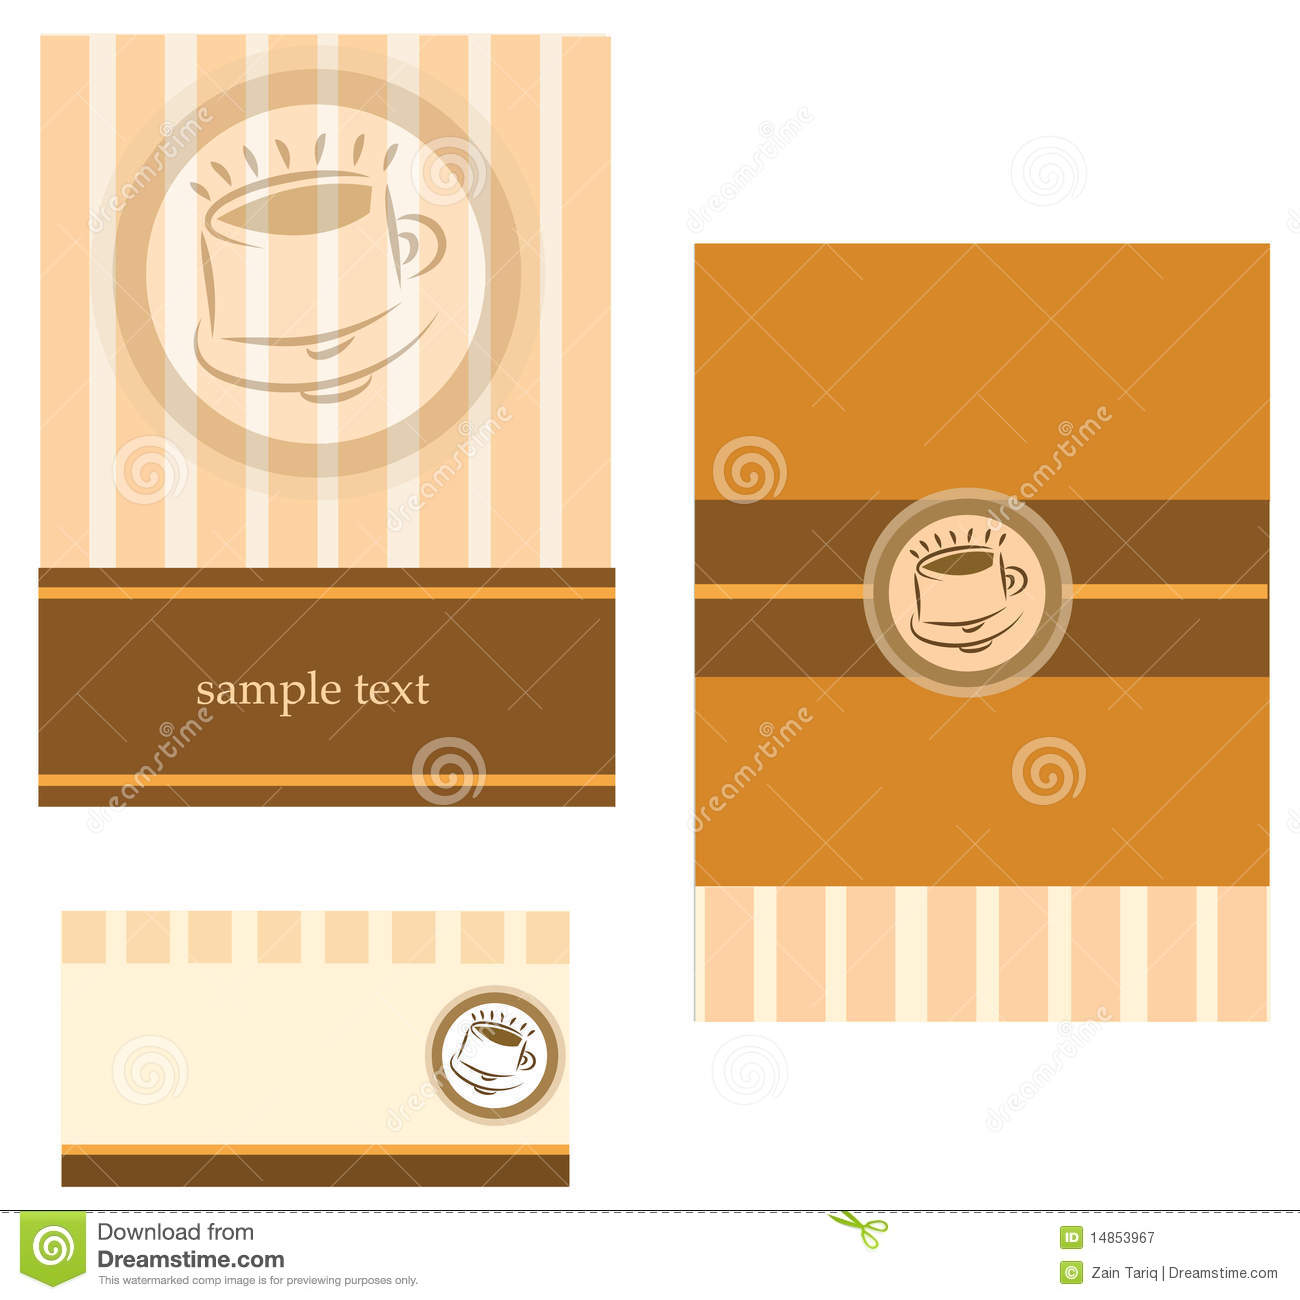 Coffee Business Card Template Free Images Coffee Shop - Coffee business card template free